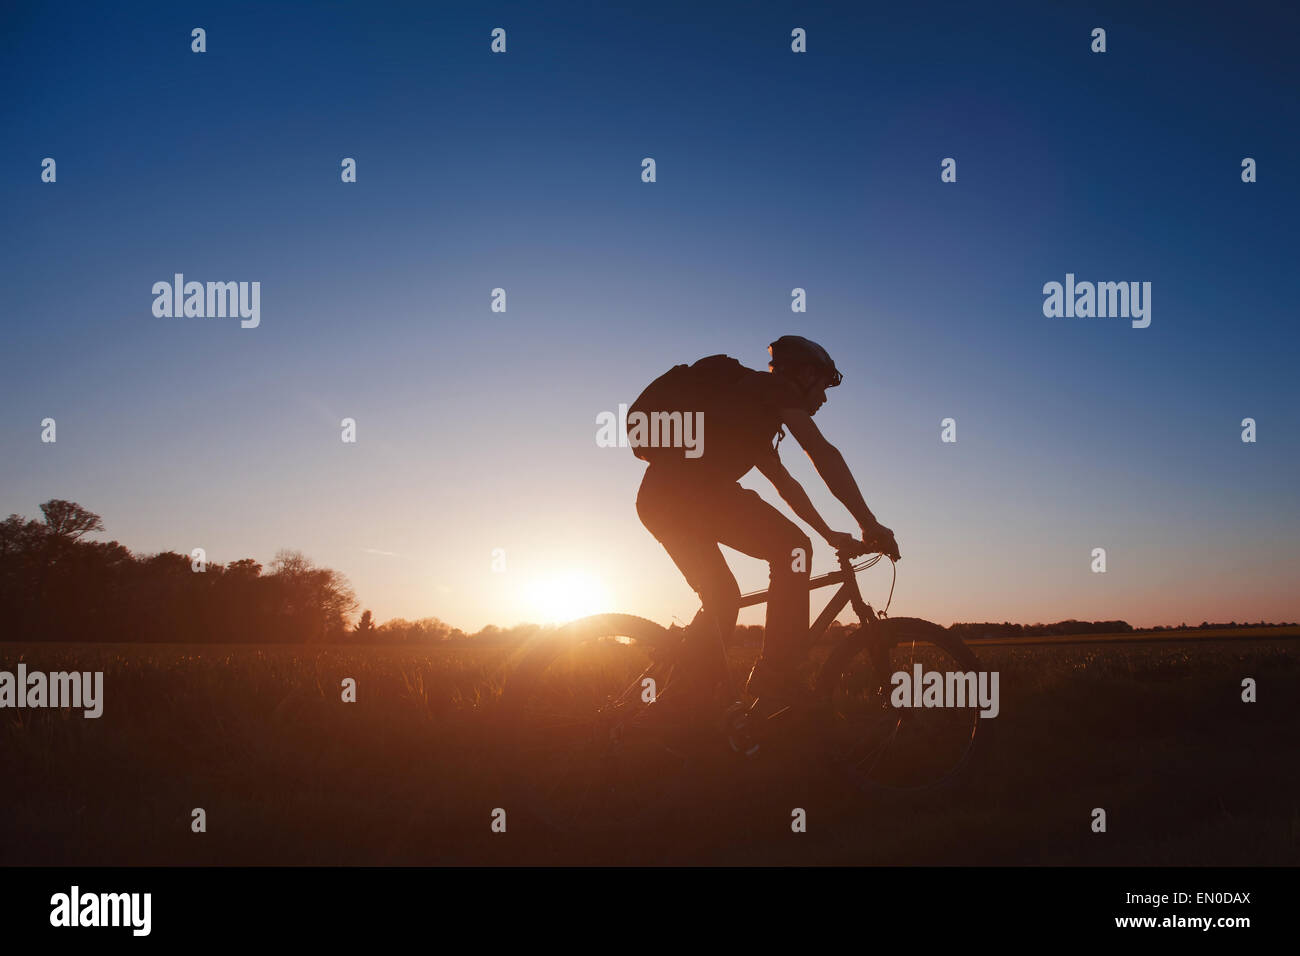 silhouette of young man on the bicycle at sunset - Stock Image